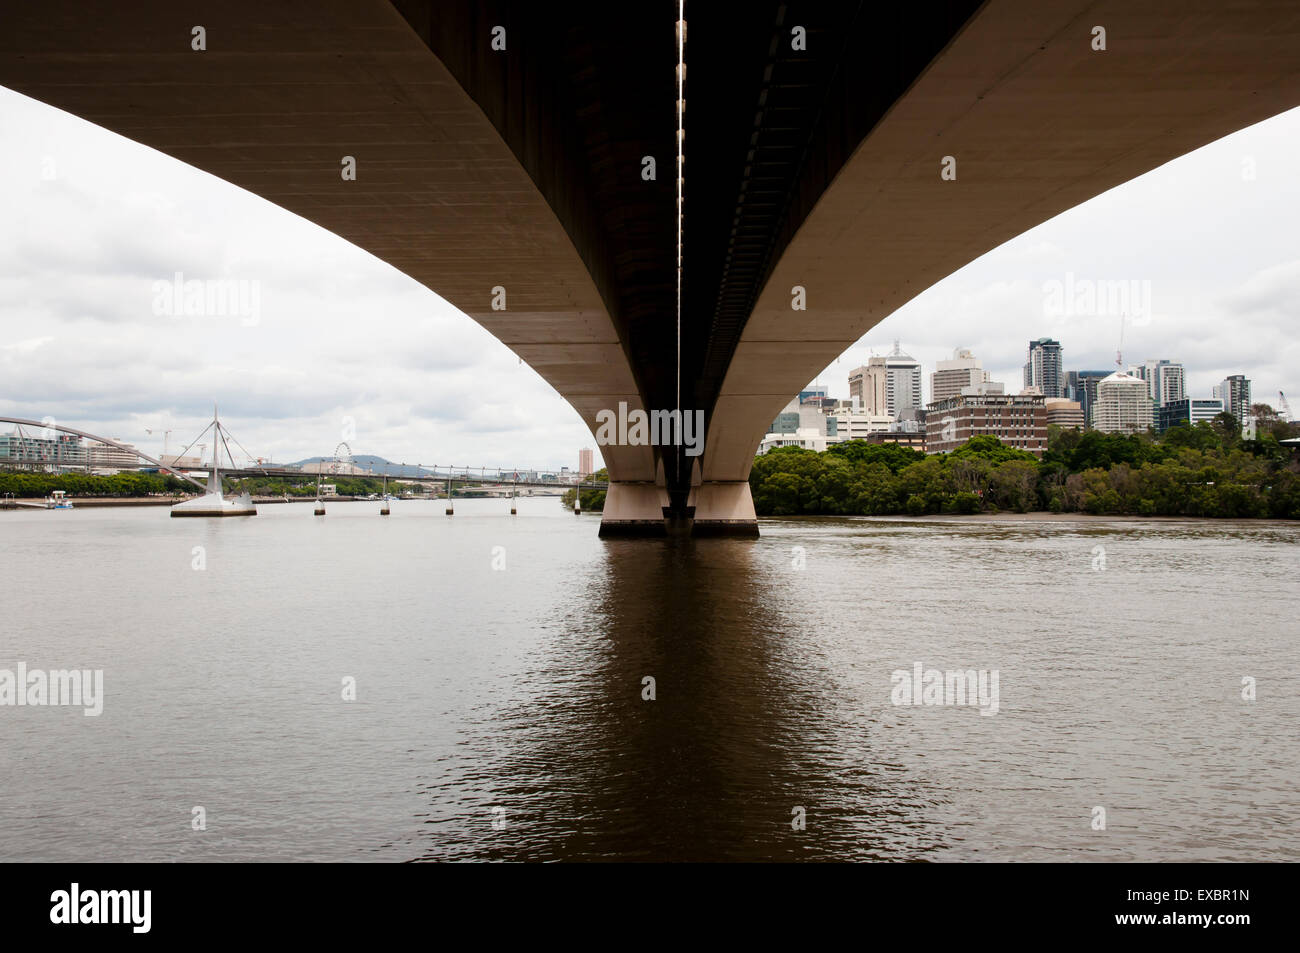 Captain Cook Bridge - Brisbane - Australia - Stock Image